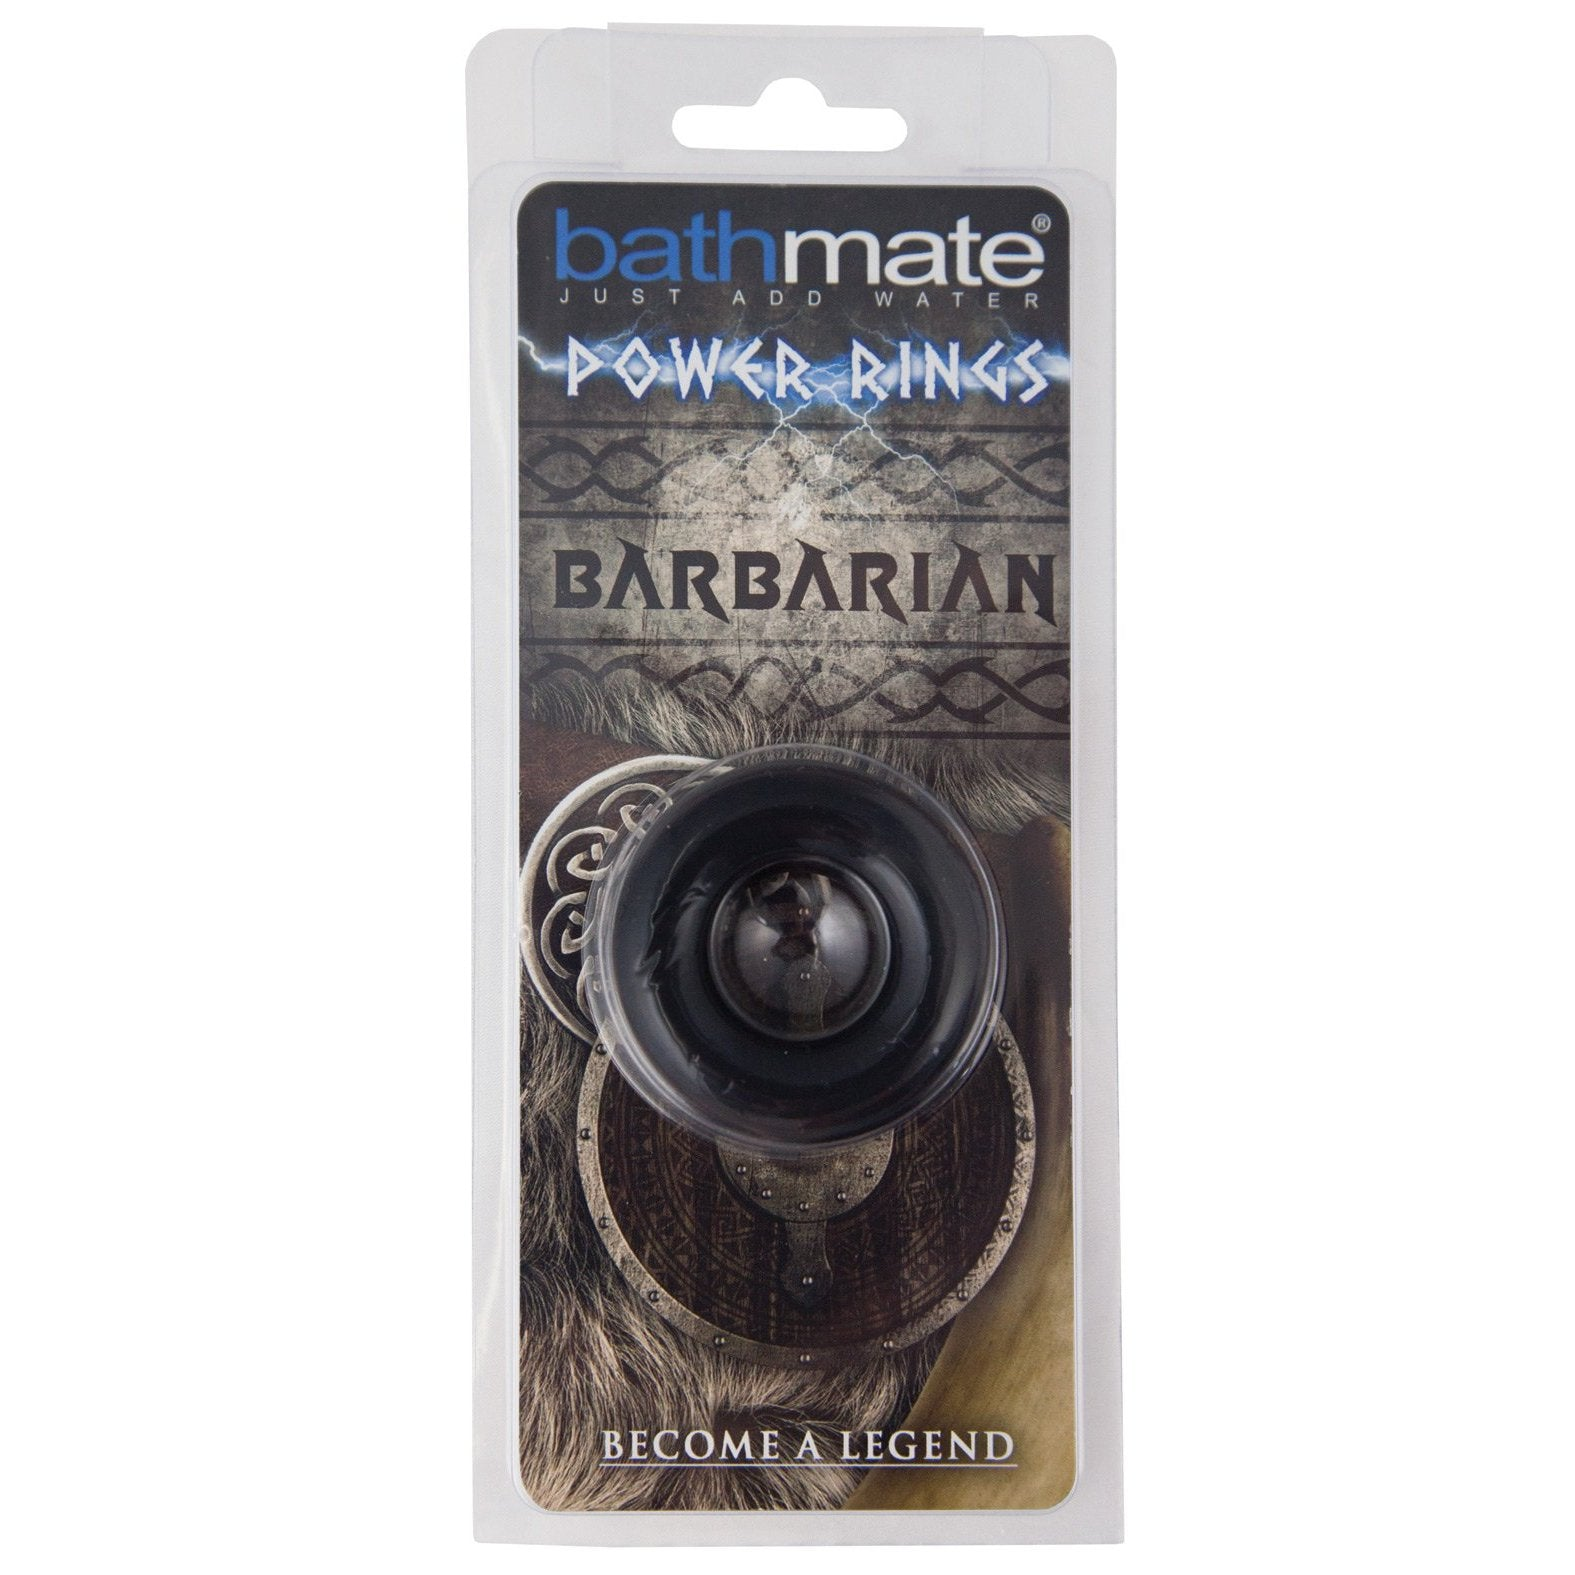 Bathmate Barbarian Cock Ring - Gay Men's Sex Toys - Adam's Toy Box